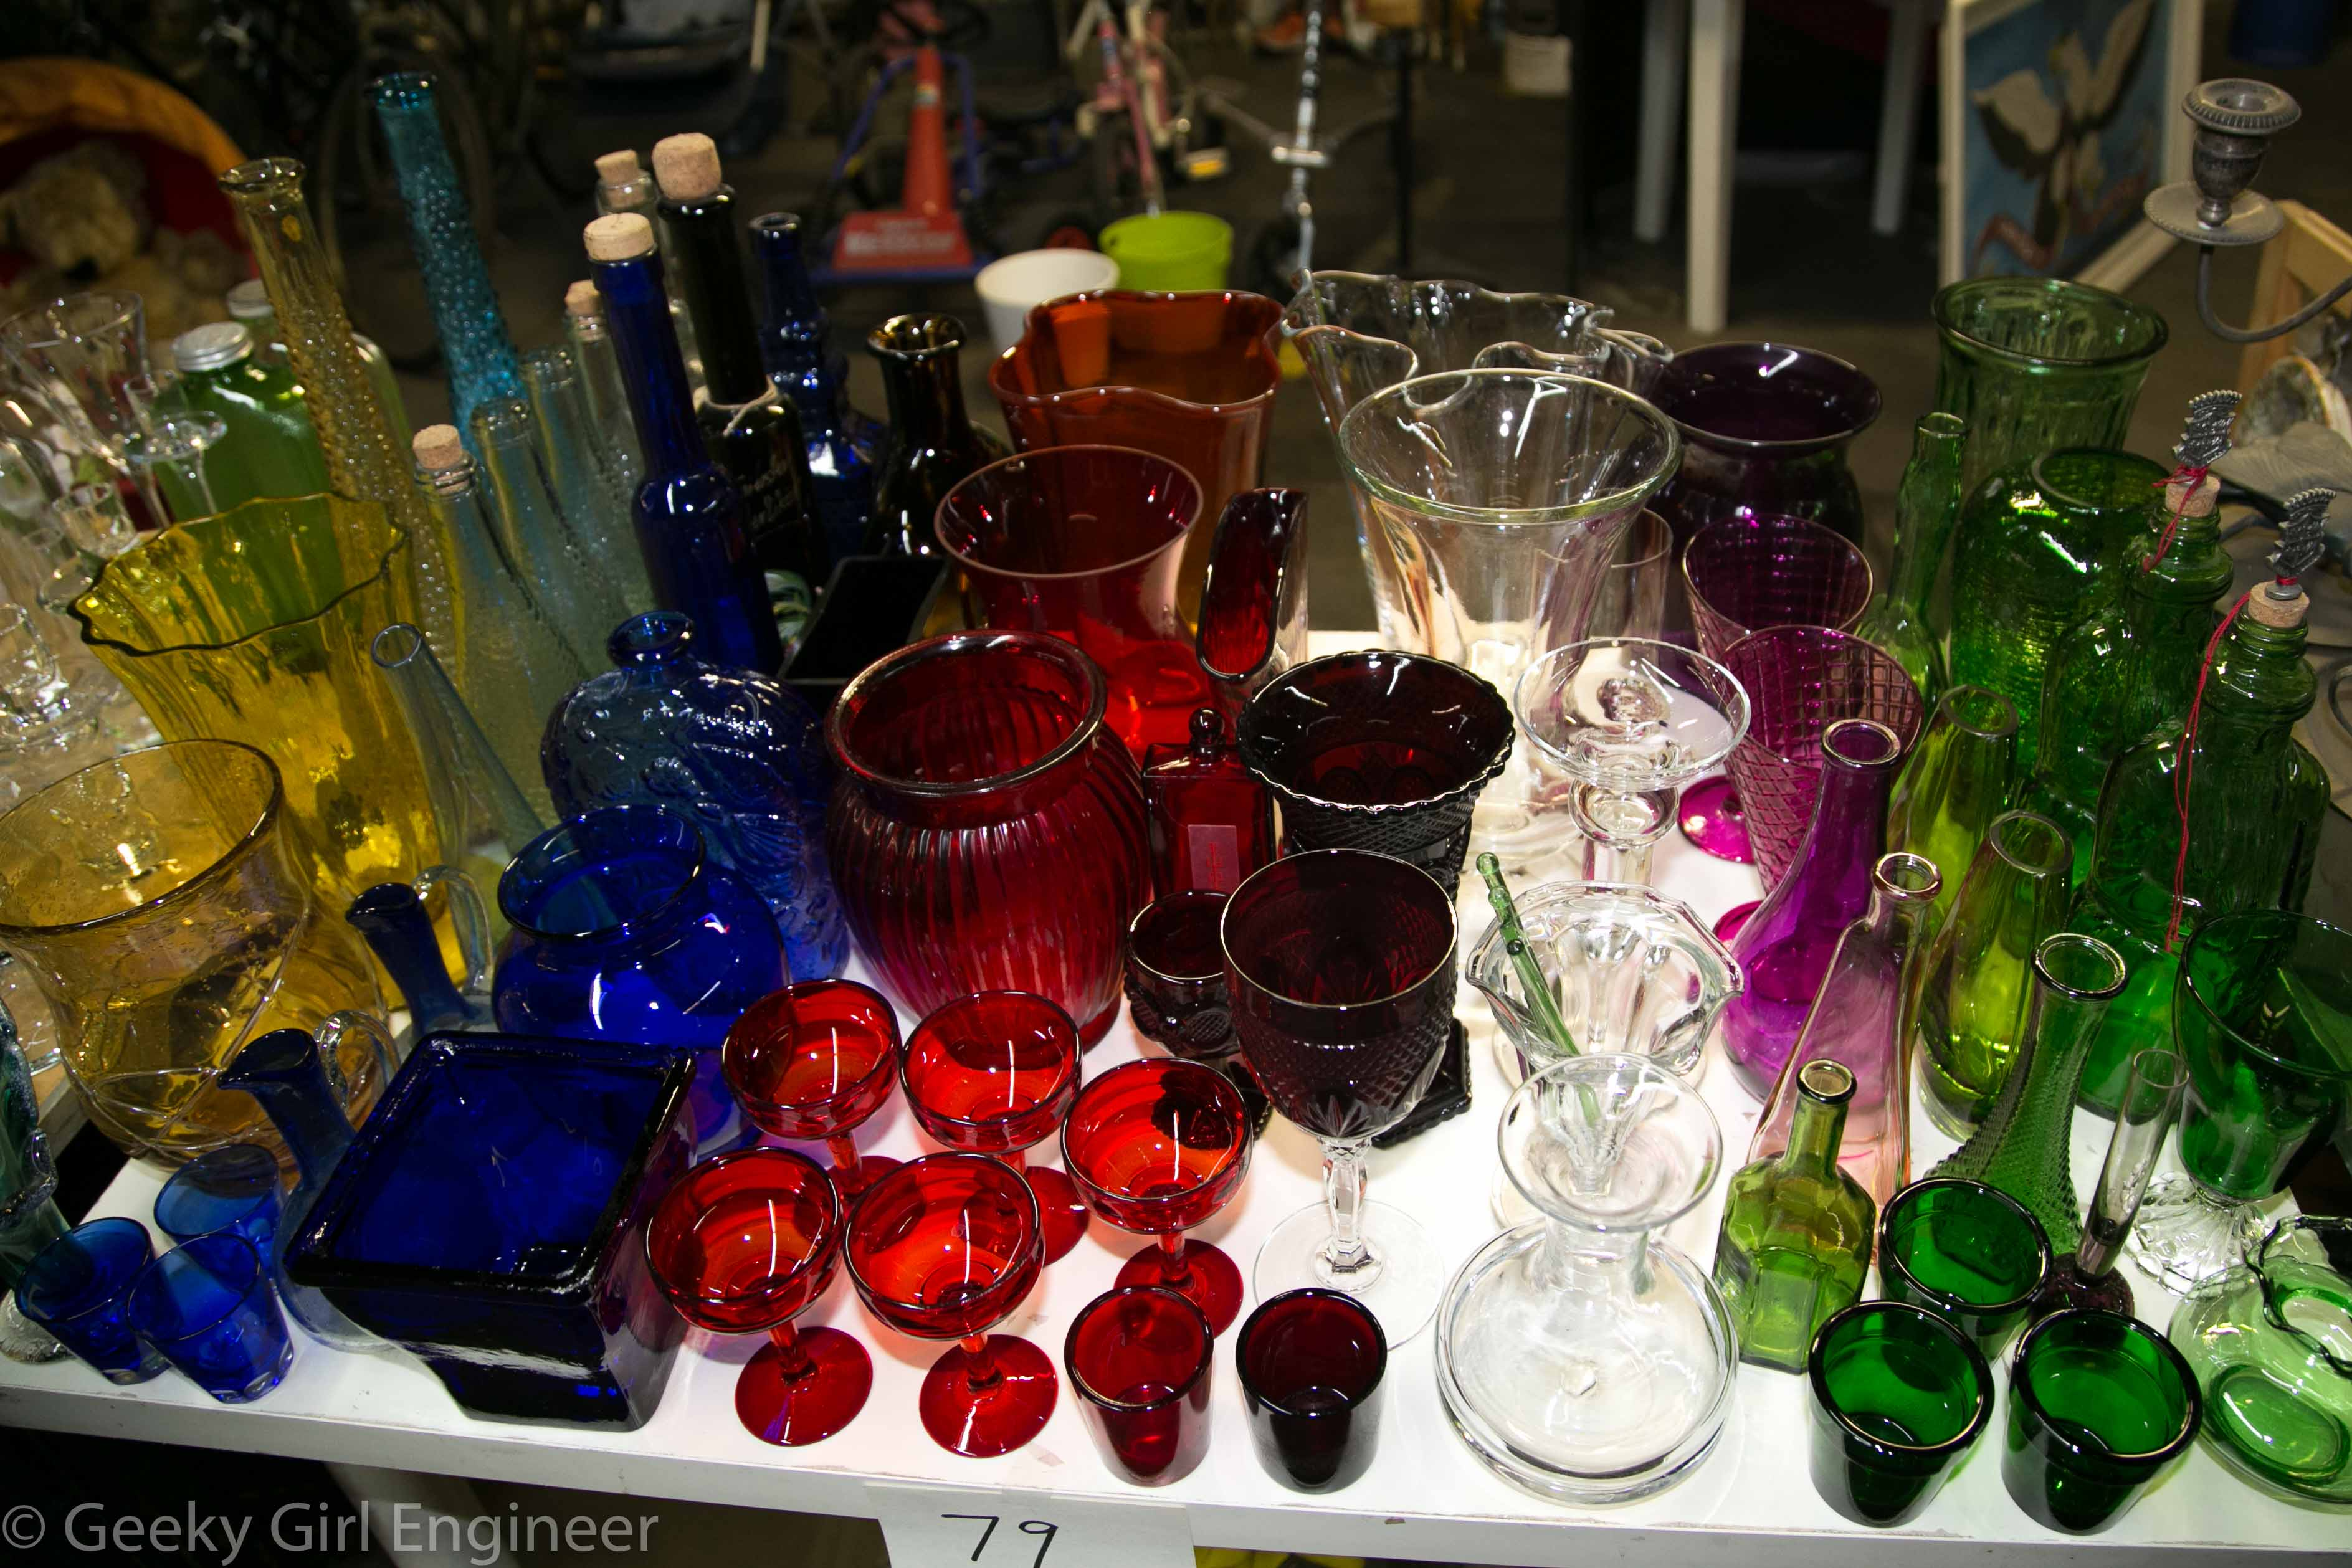 Colored glass collection that was amazingly unbroken